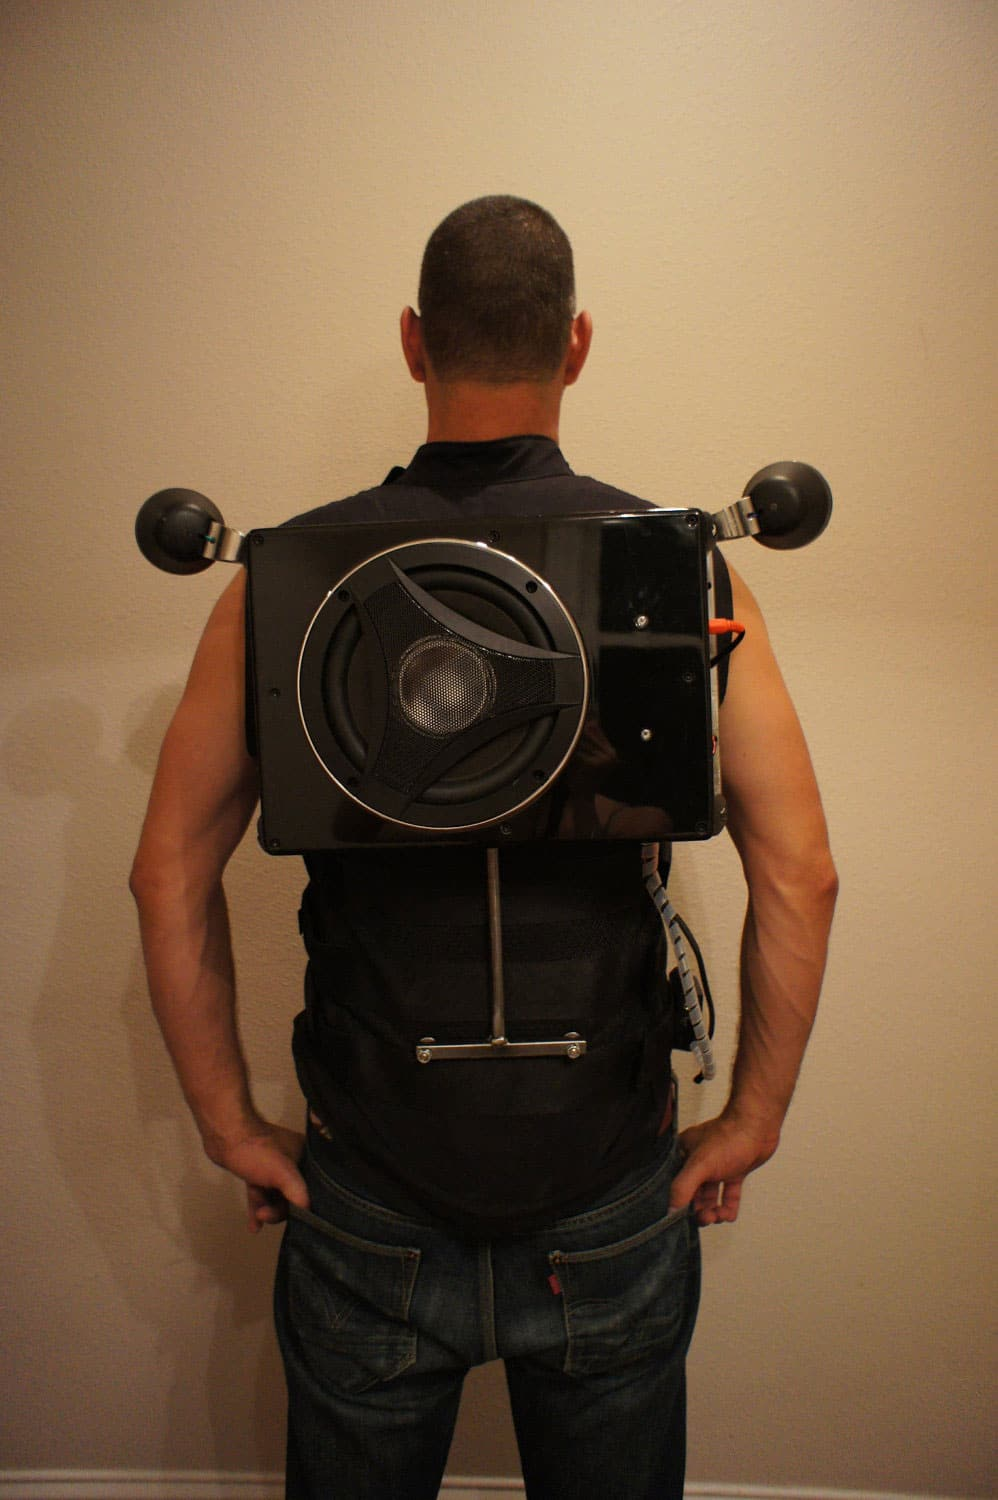 Wearable Boombox Backpack Packs A Divine Punch Bit Rebels